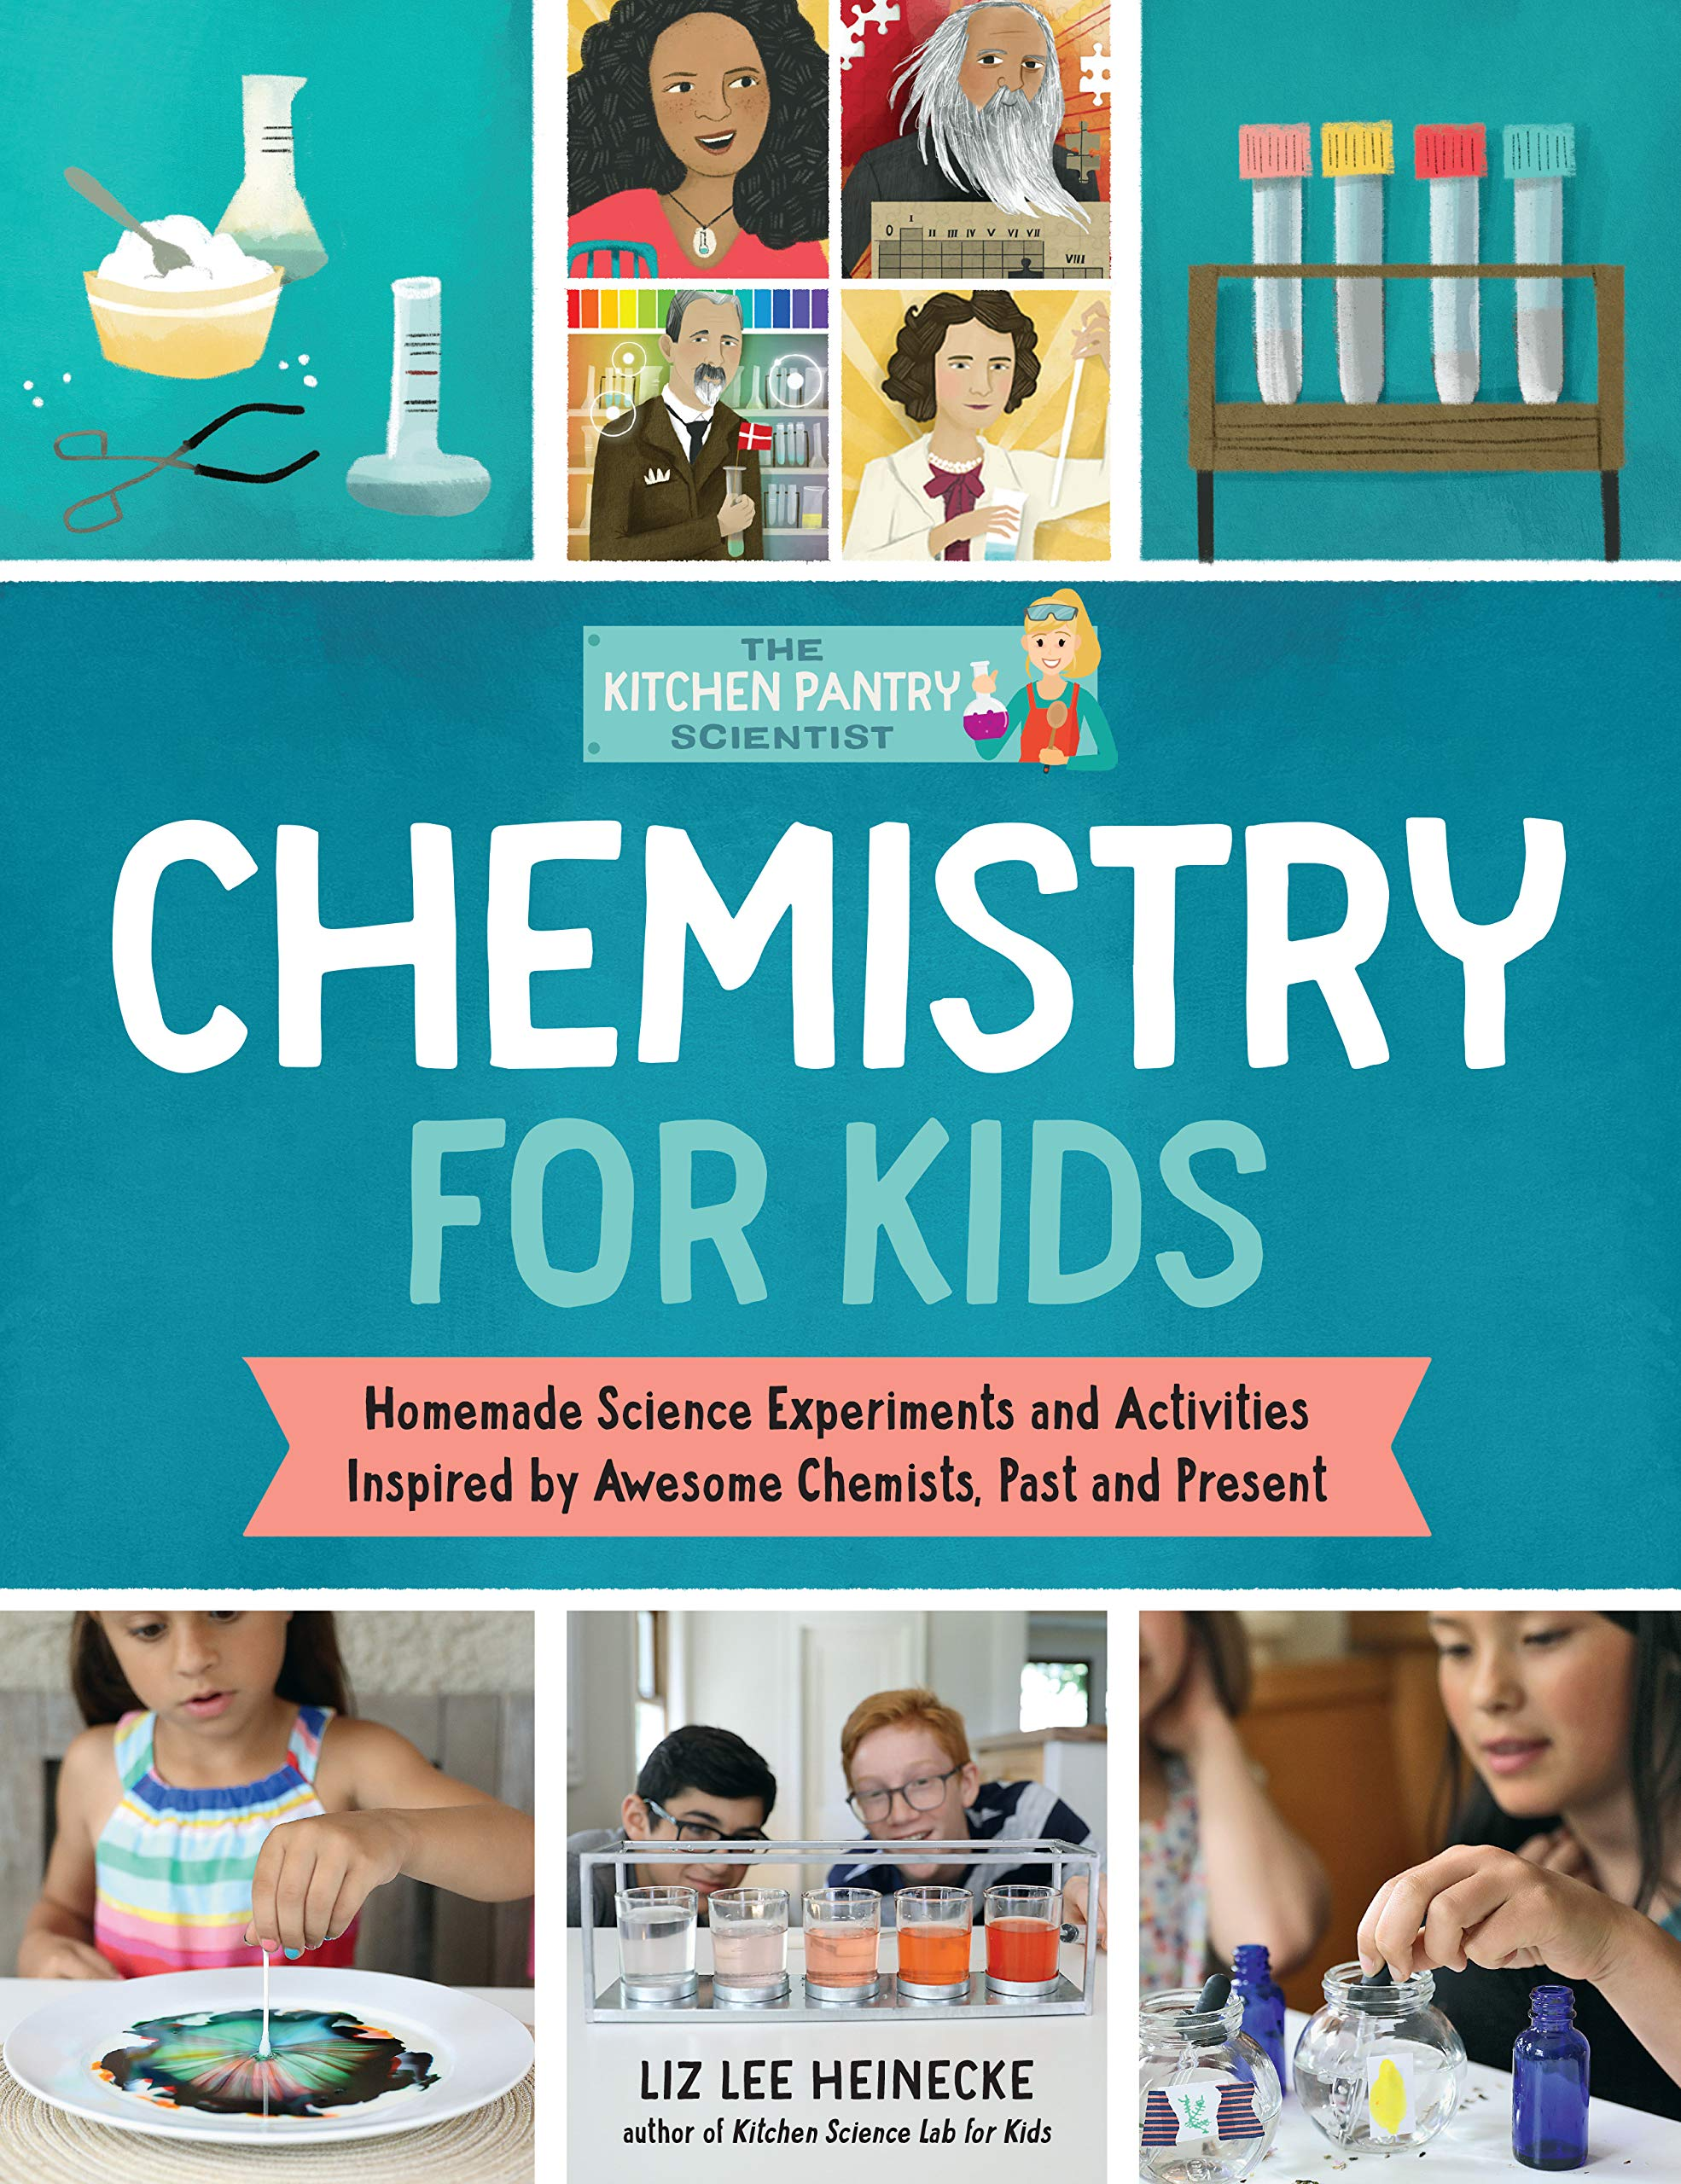 The Kitchen Pantry ­Scientist: Chemistry for Kids: Homemade Science Experiments and Activities Inspired by Awesome Chemists, Past and Present